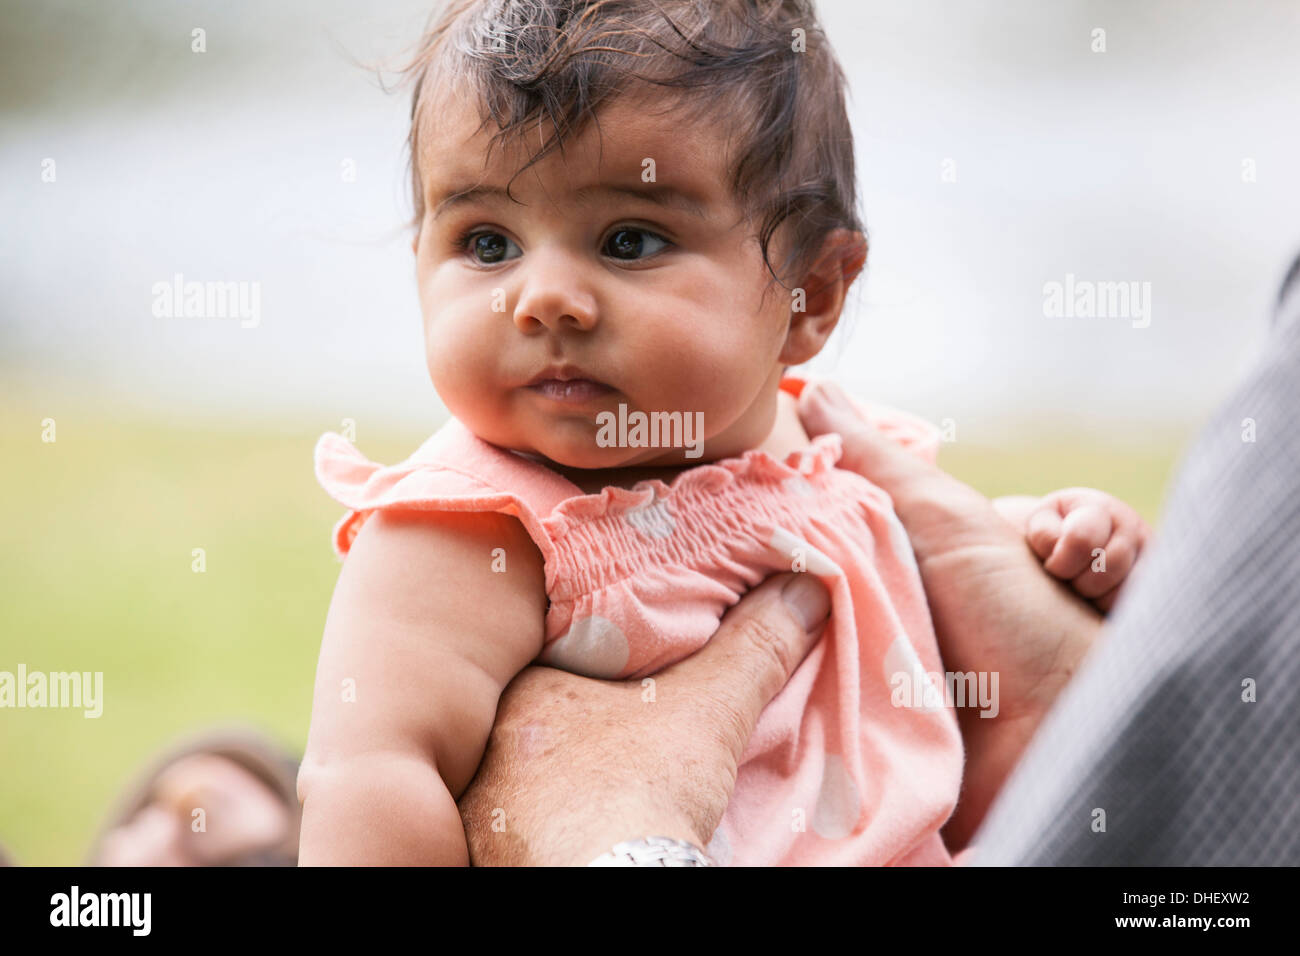 Baby in arms - Stock Image